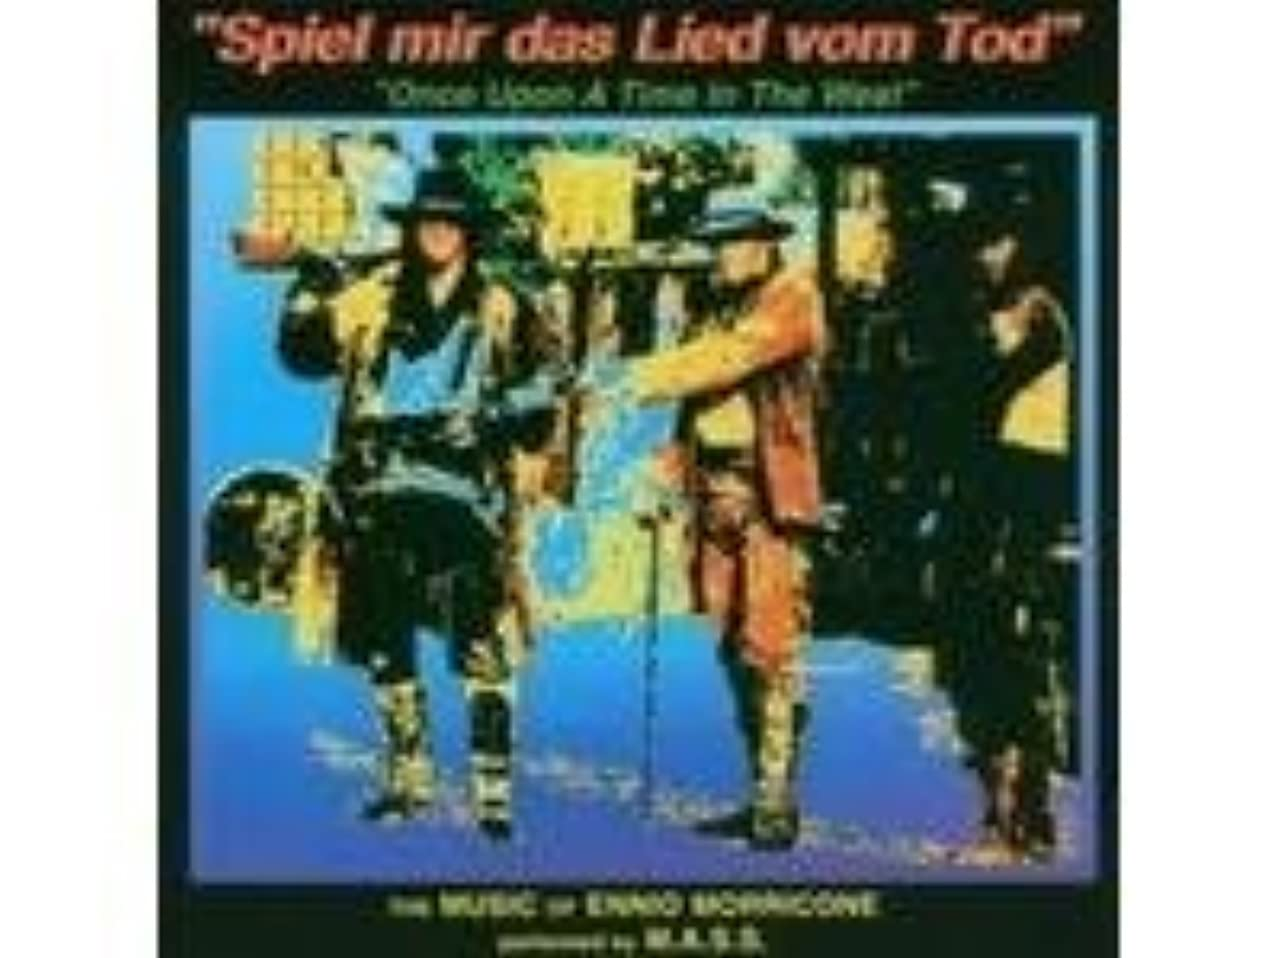 The Music Of Ennio Morricone:Once Upon A Time In The West,Spiel Mir das Lied Vom Tod